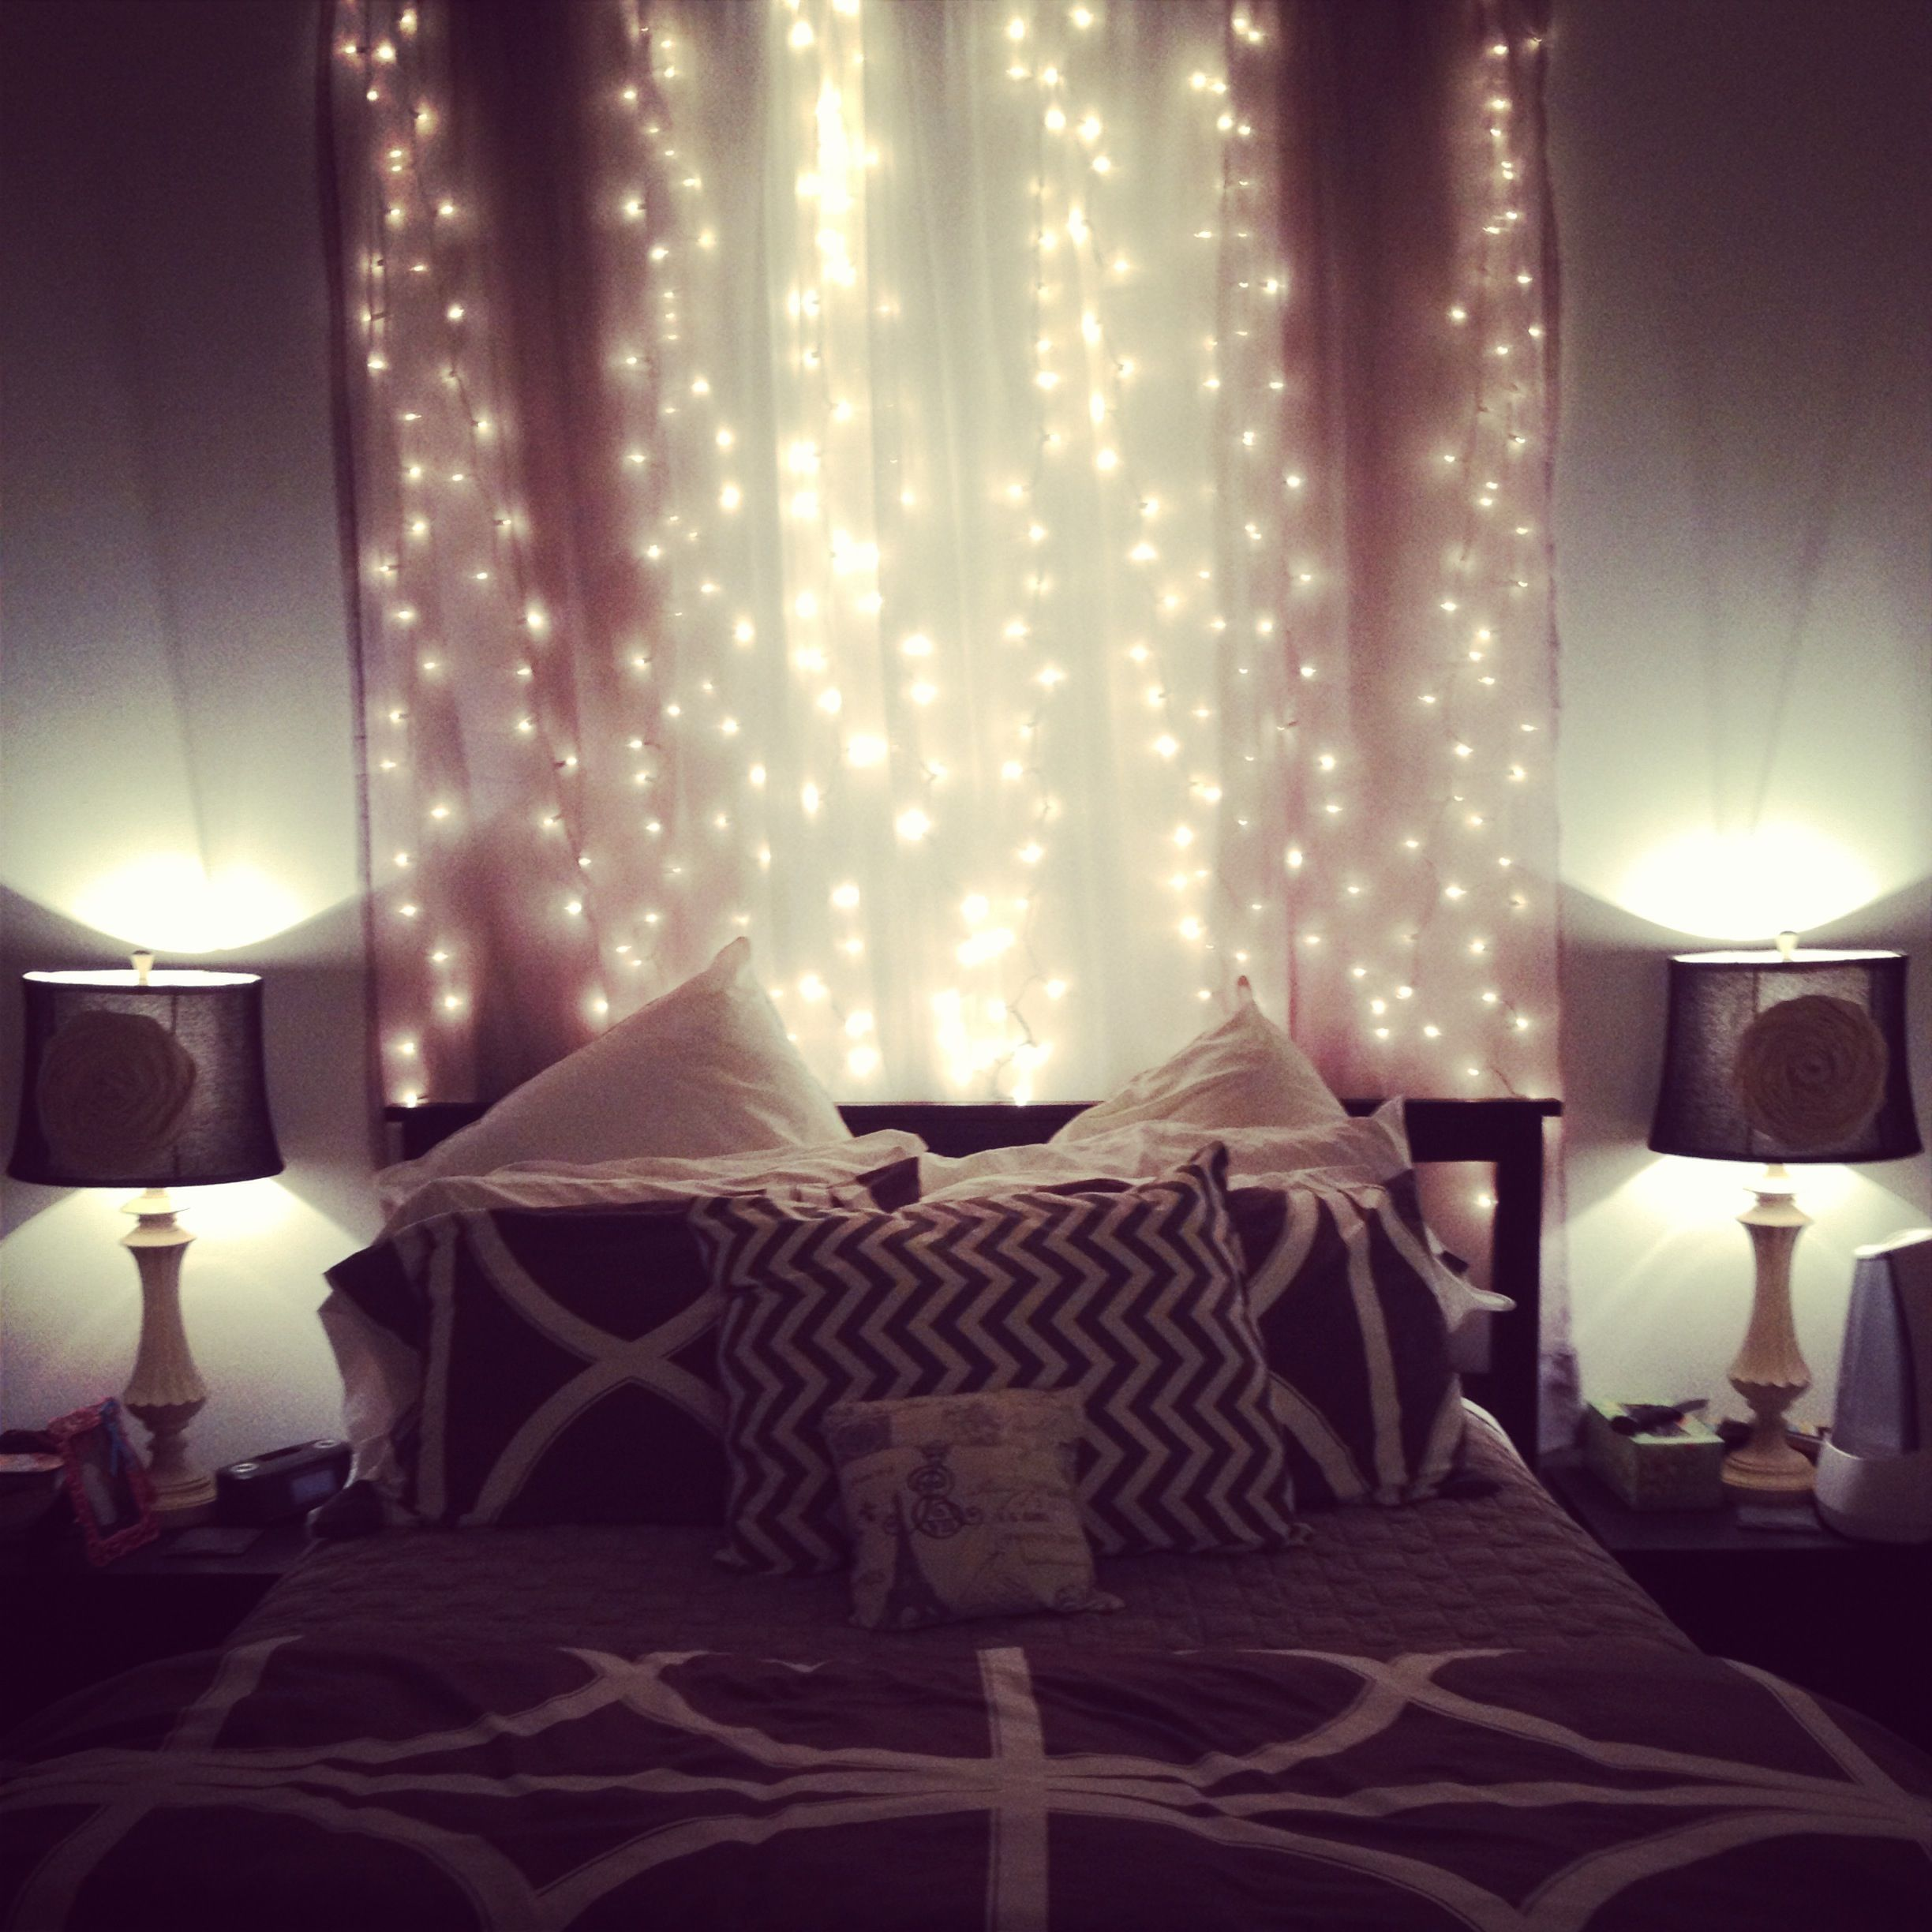 fairy lights in the bedroom bedroom ideas pinterest